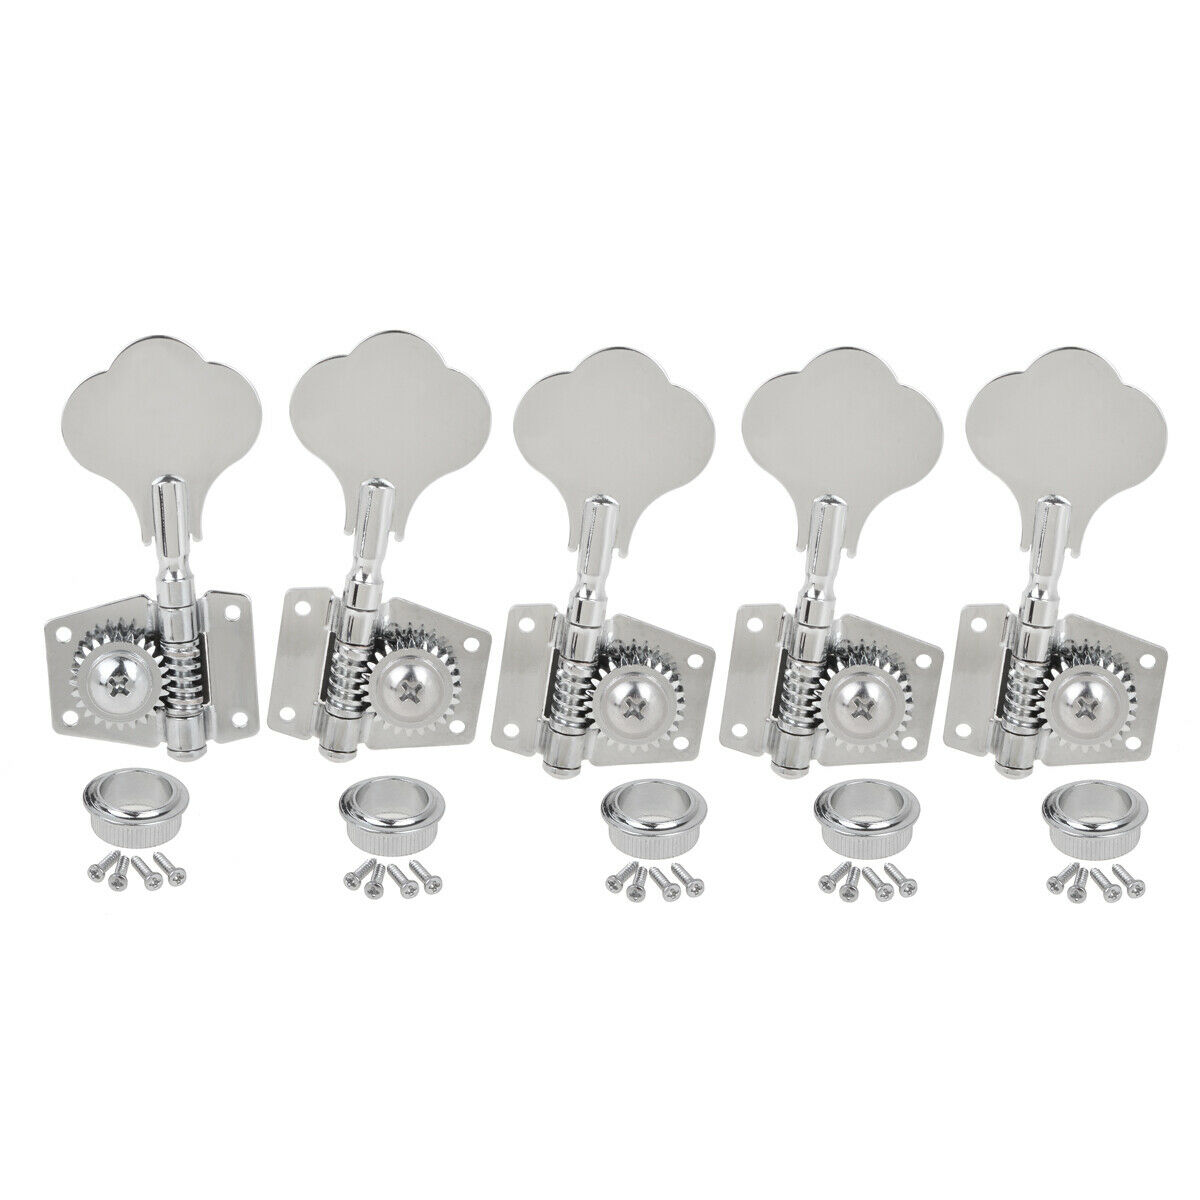 bass tuning pegs machine heads tuners for 5 string jazz p guitar 4r1l chrome 634458631556 ebay. Black Bedroom Furniture Sets. Home Design Ideas